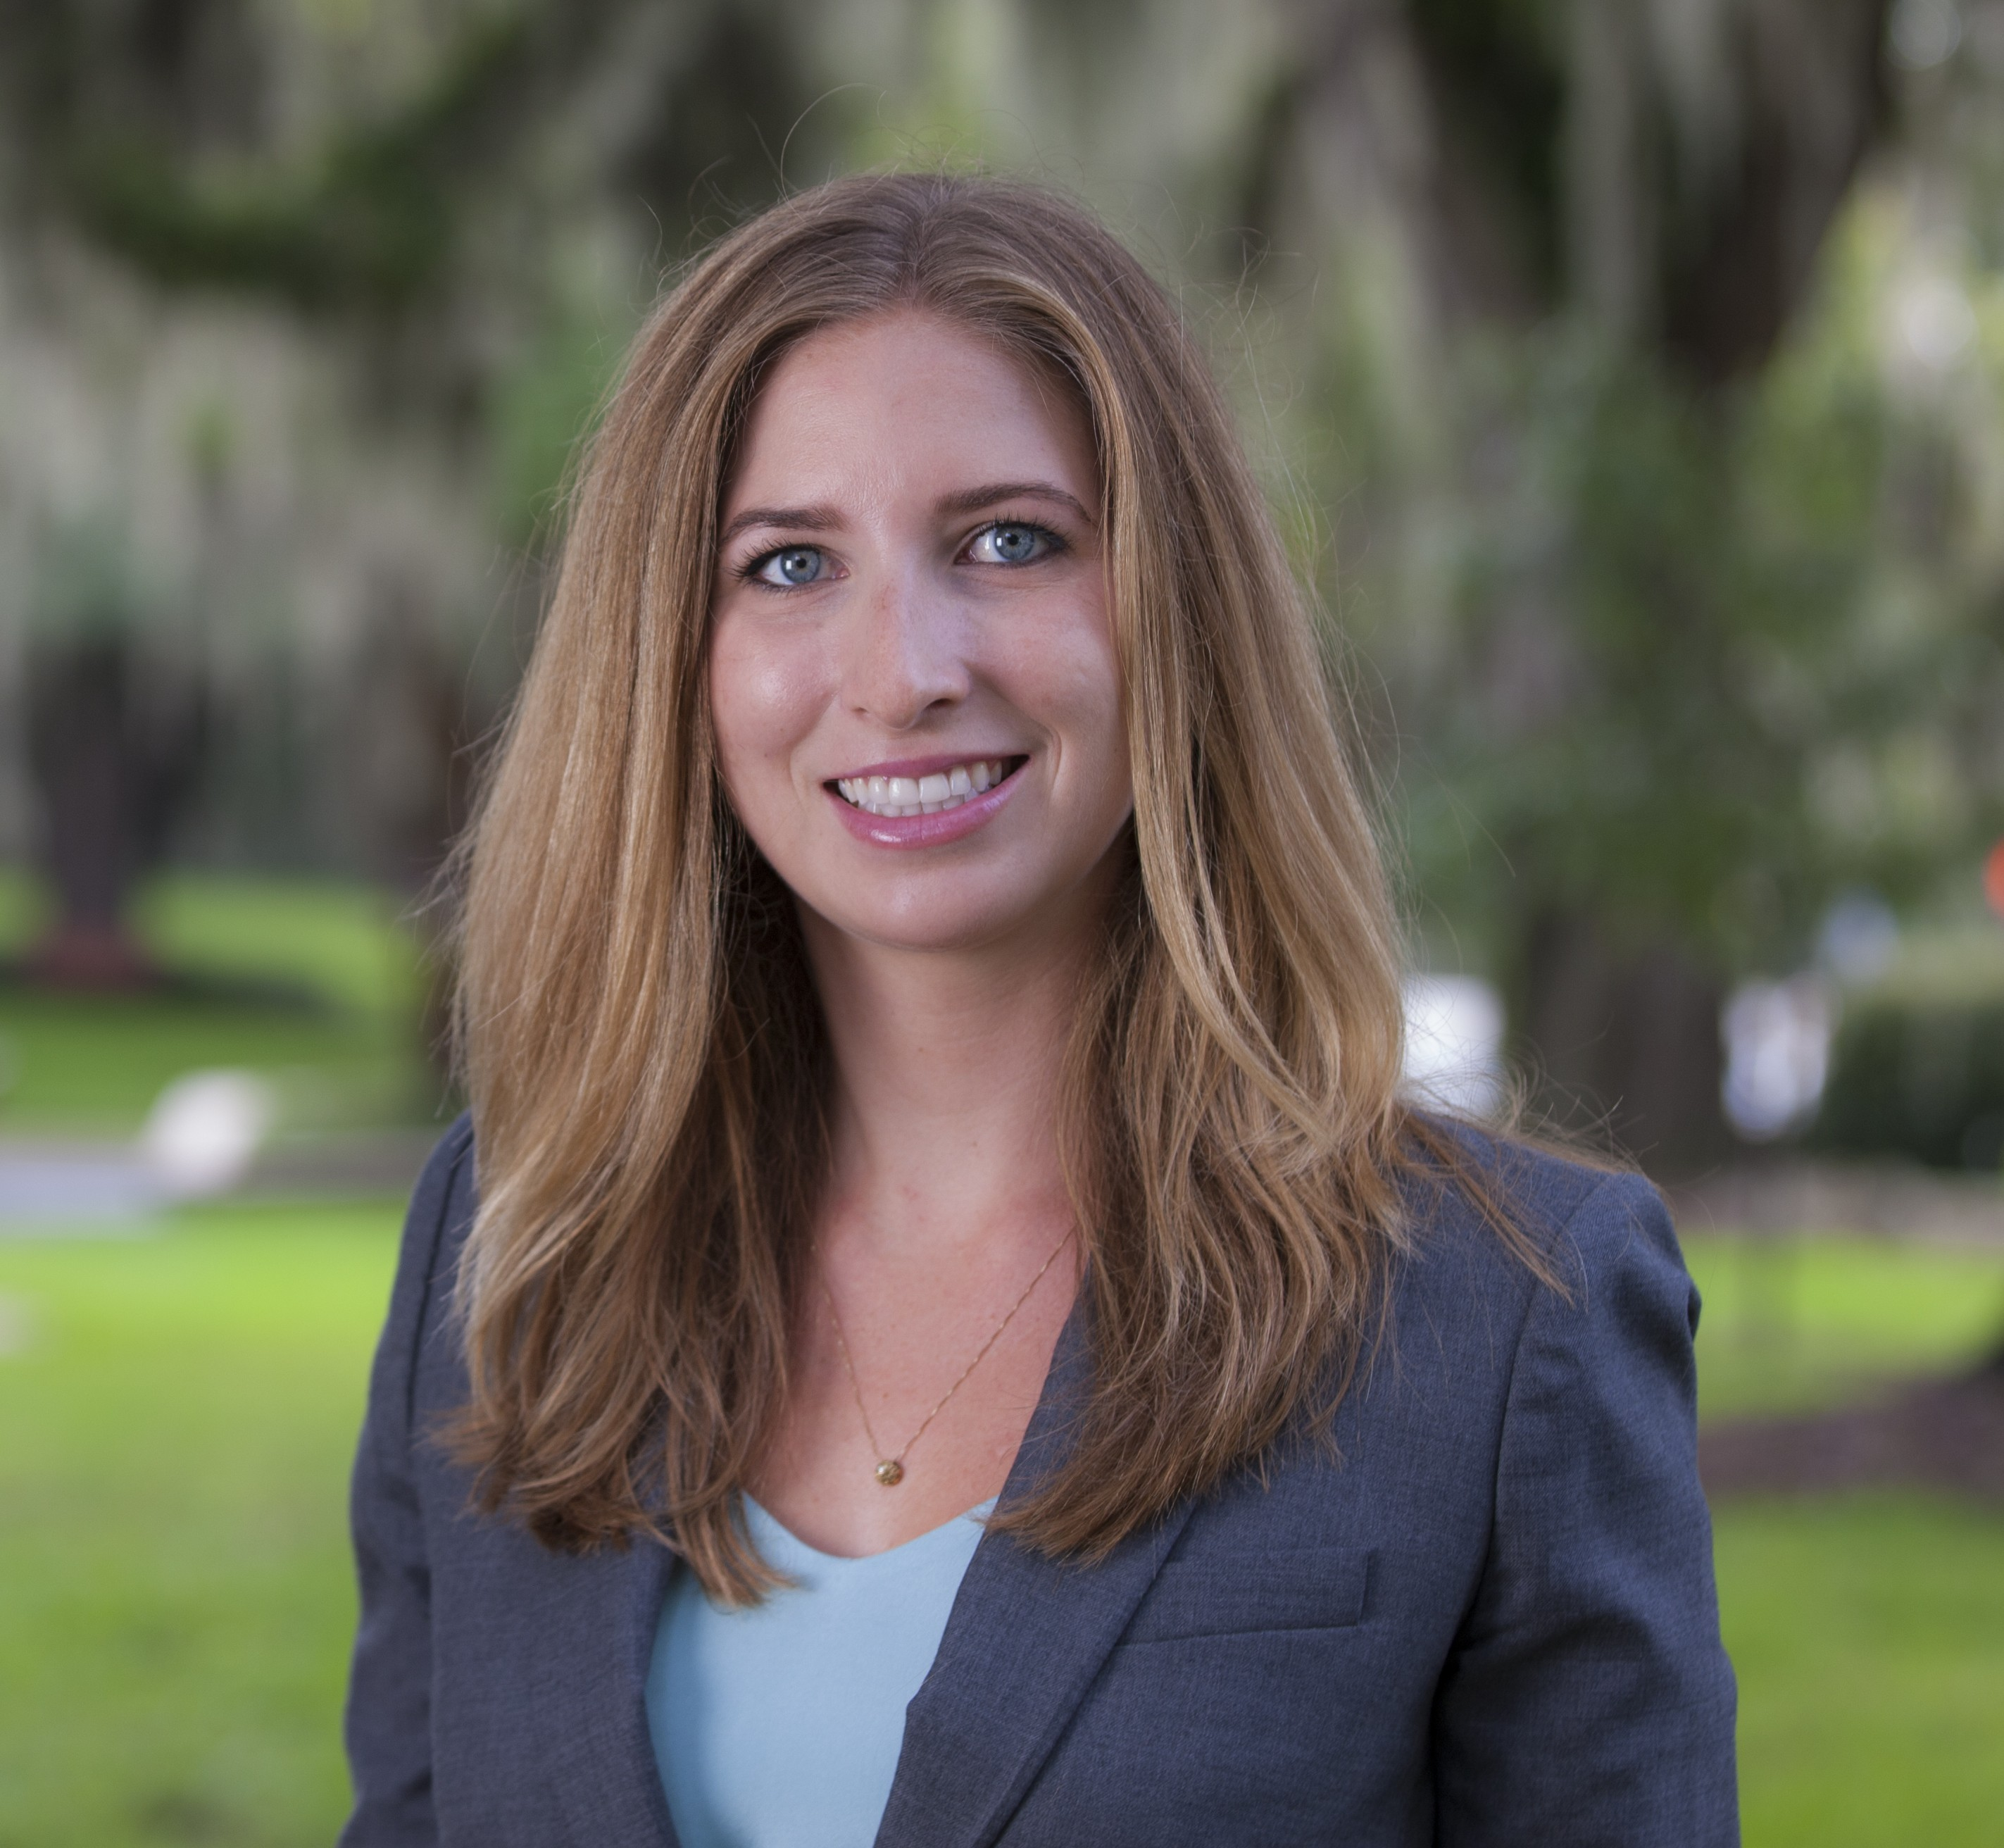 HGS Attorney Cameron Chosen as President-Elect of Tallahassee Young Lawyers' Section